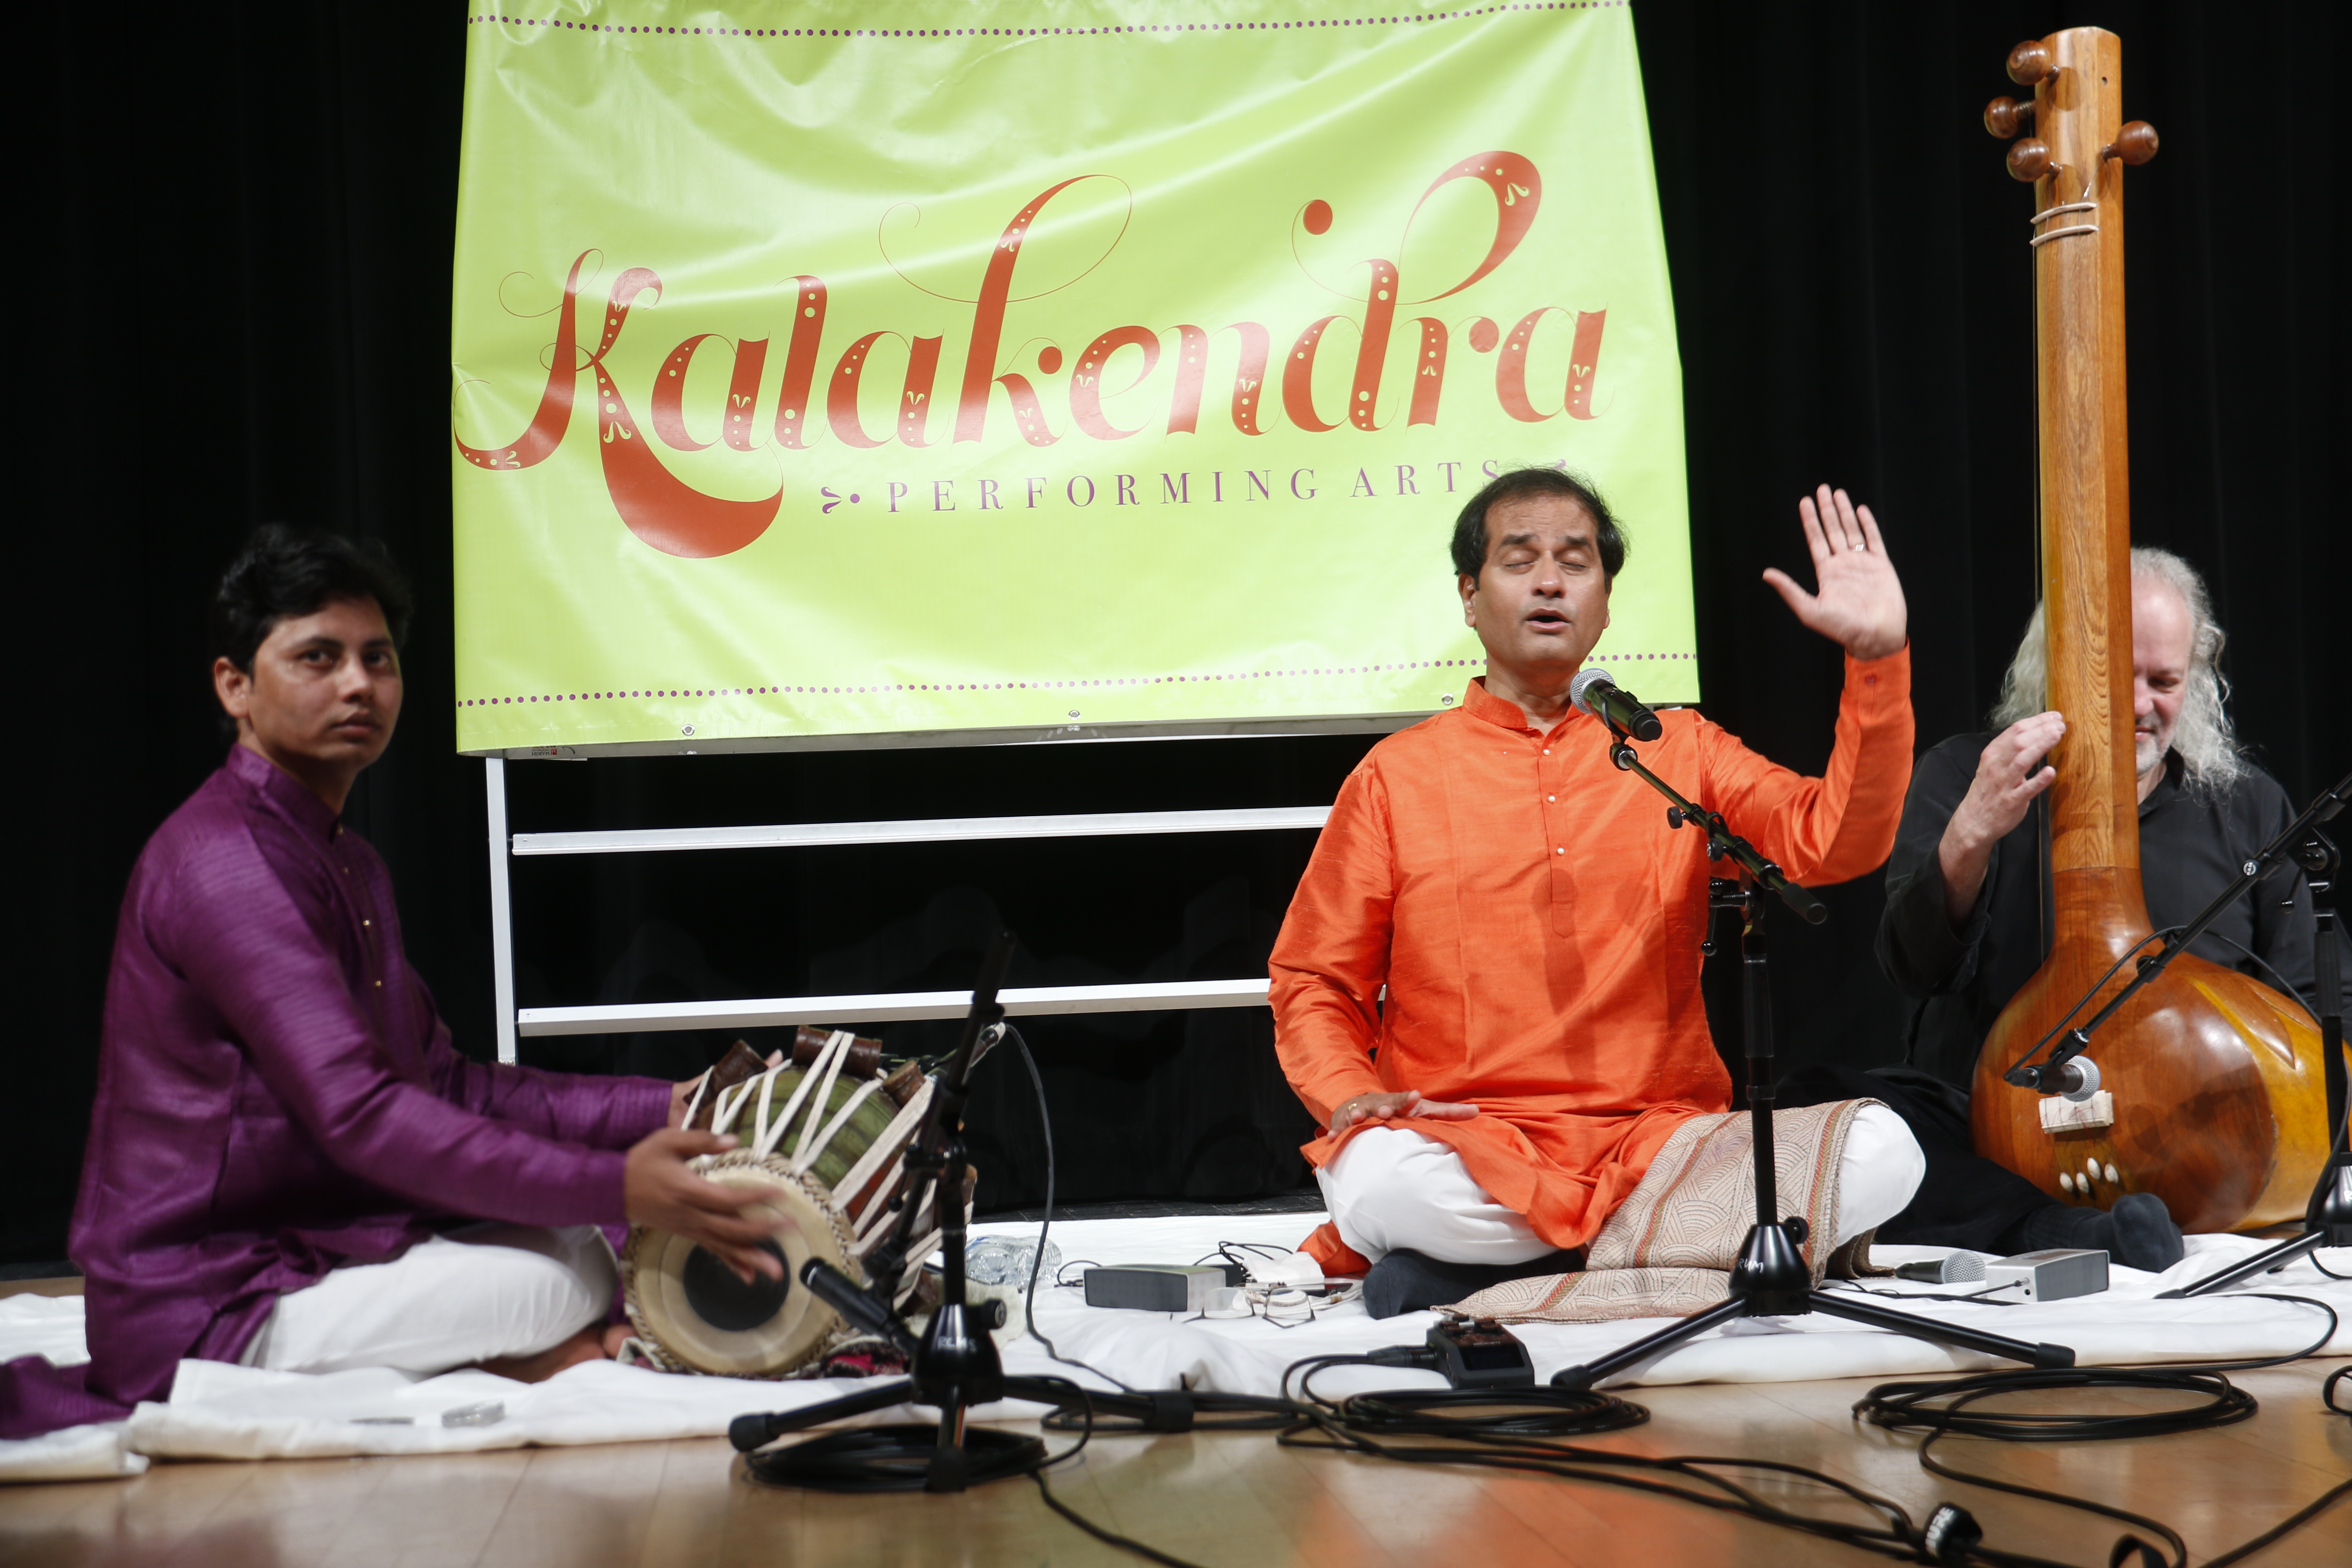 Uday Bhawalkar review: a quick primer on Indian music appreciation